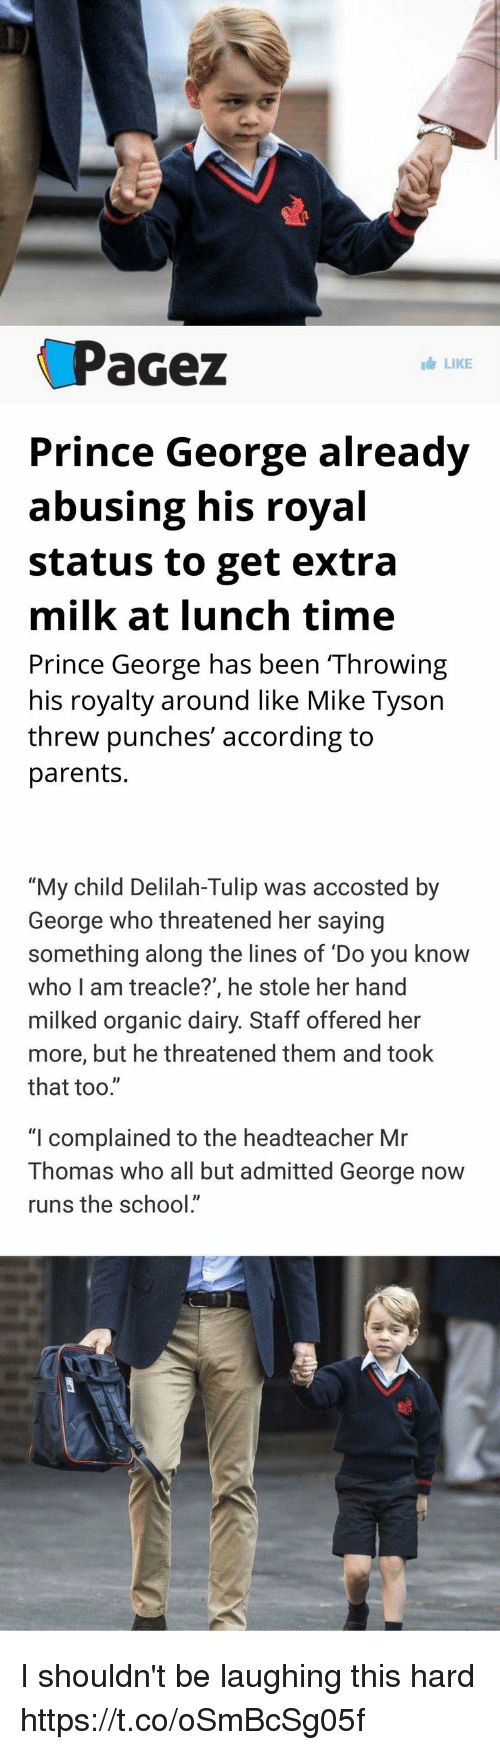 "Mike Tyson, Parents, and Prince: Pacez  LIKE  Prince George already  abusing his royal  Status to get extra  milk at lunch time  Prince George has been Throwing  his royalty around like Mike Tyson  threw punches' according to  parents.   ""My child Delilah-Tulip was accosted by  George who threatened her saying  something along the lines of Do you know  who I am treacle?', he stole her hand  milked organic dairy. Staff offered her  more, but he threatened them and took  that too.""  ""I complained to the headteacher Mr  Thomas who all but admitted George now  runs the school"" I shouldn't be laughing this hard https://t.co/oSmBcSg05f"